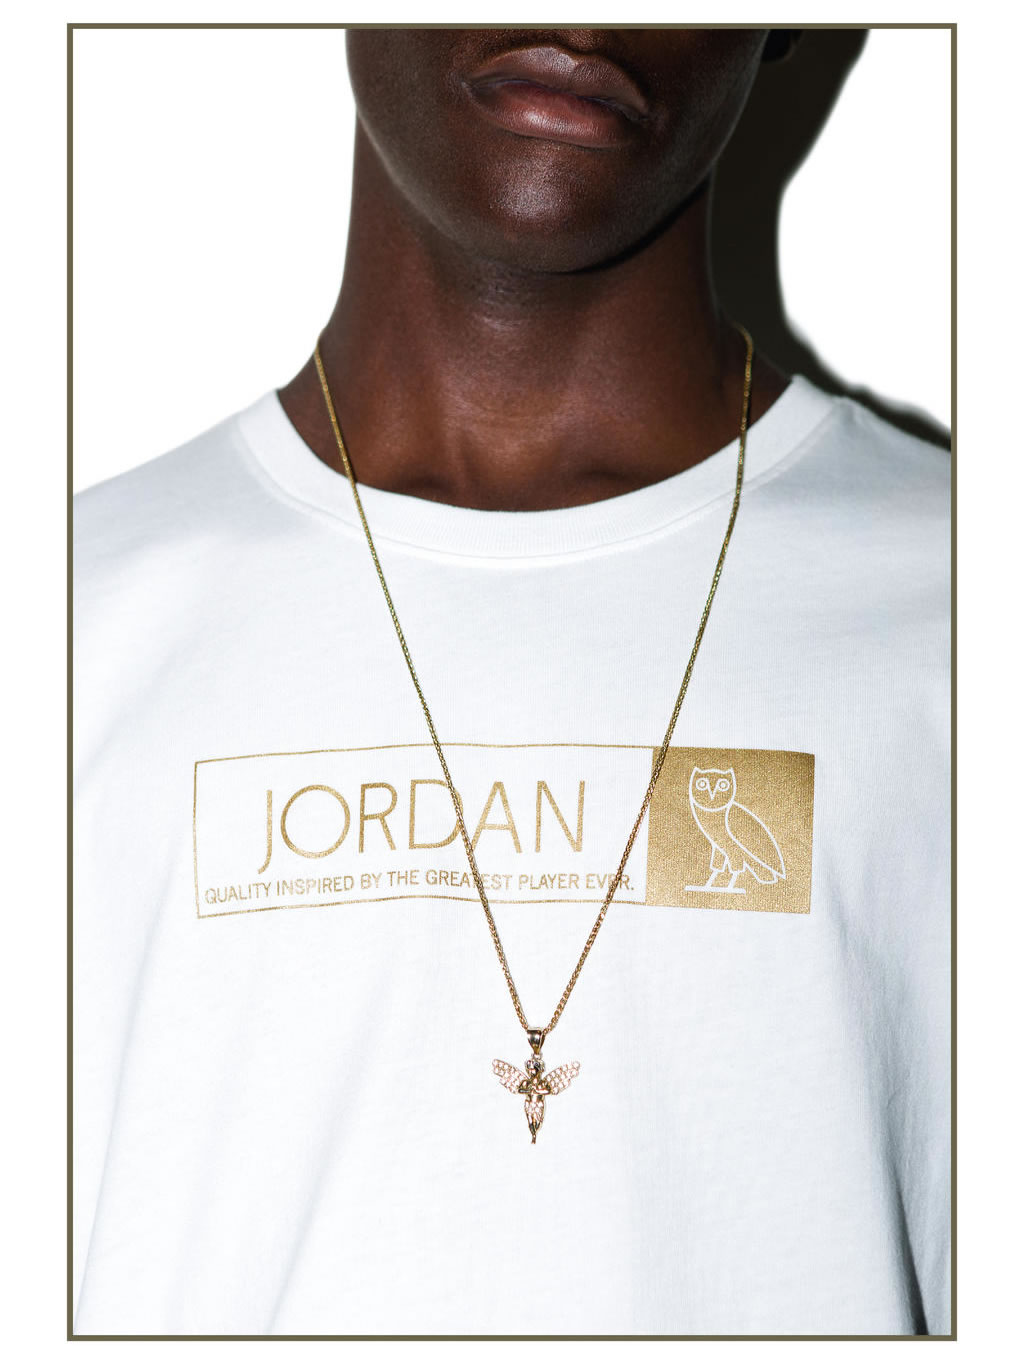 b0c0c9d265dac1 Holiday 2016 Collection By Jordan And Ovo